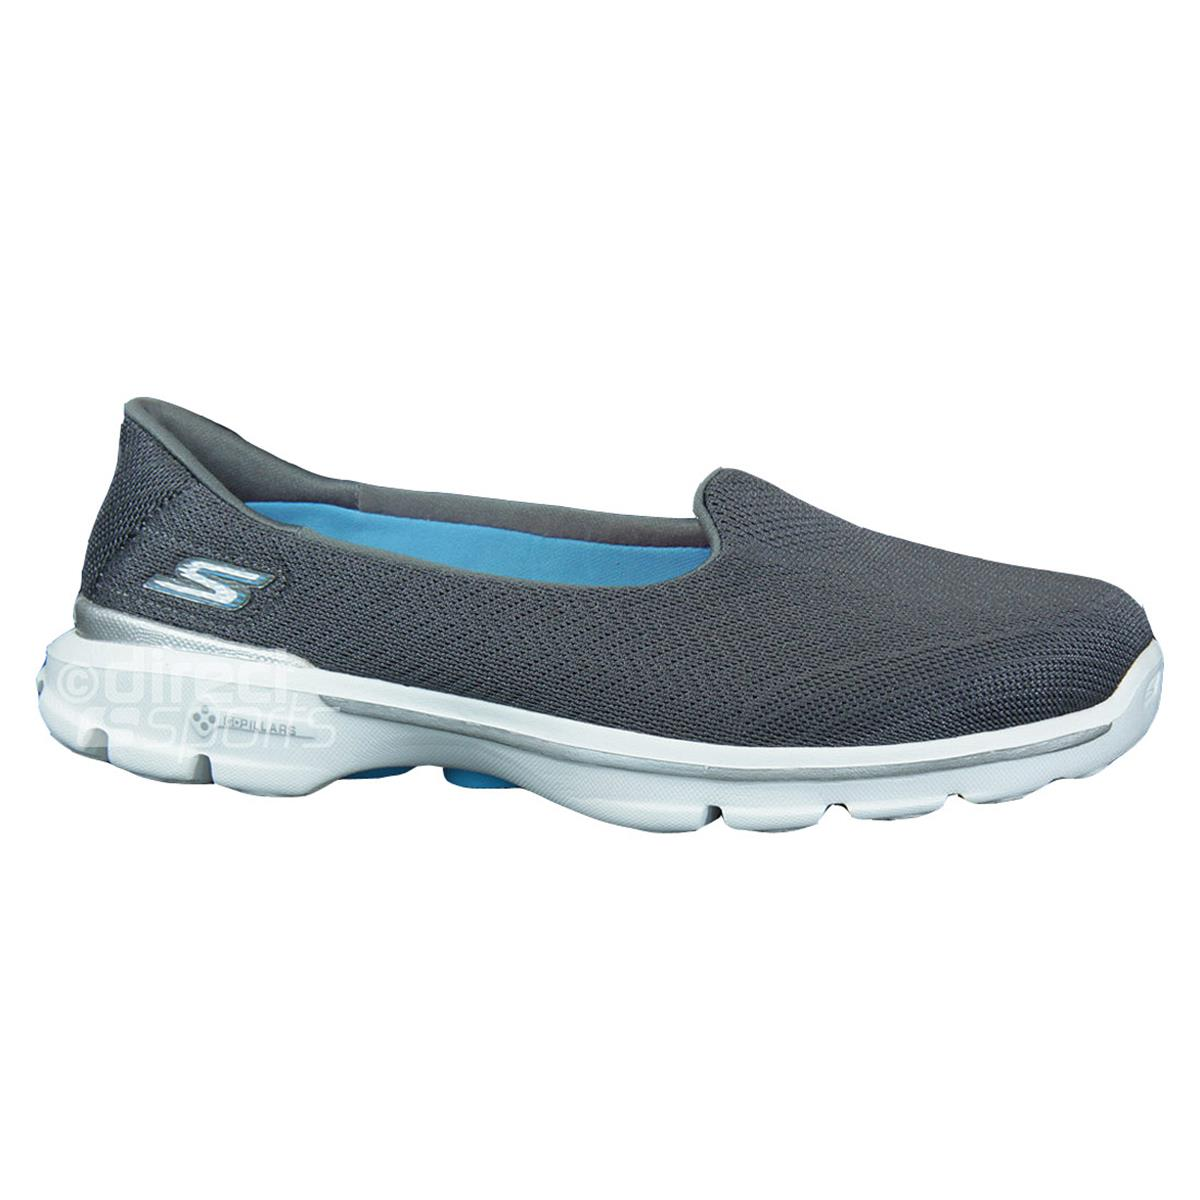 Skechers Go Walk 3 Womens Shoes Charcoal